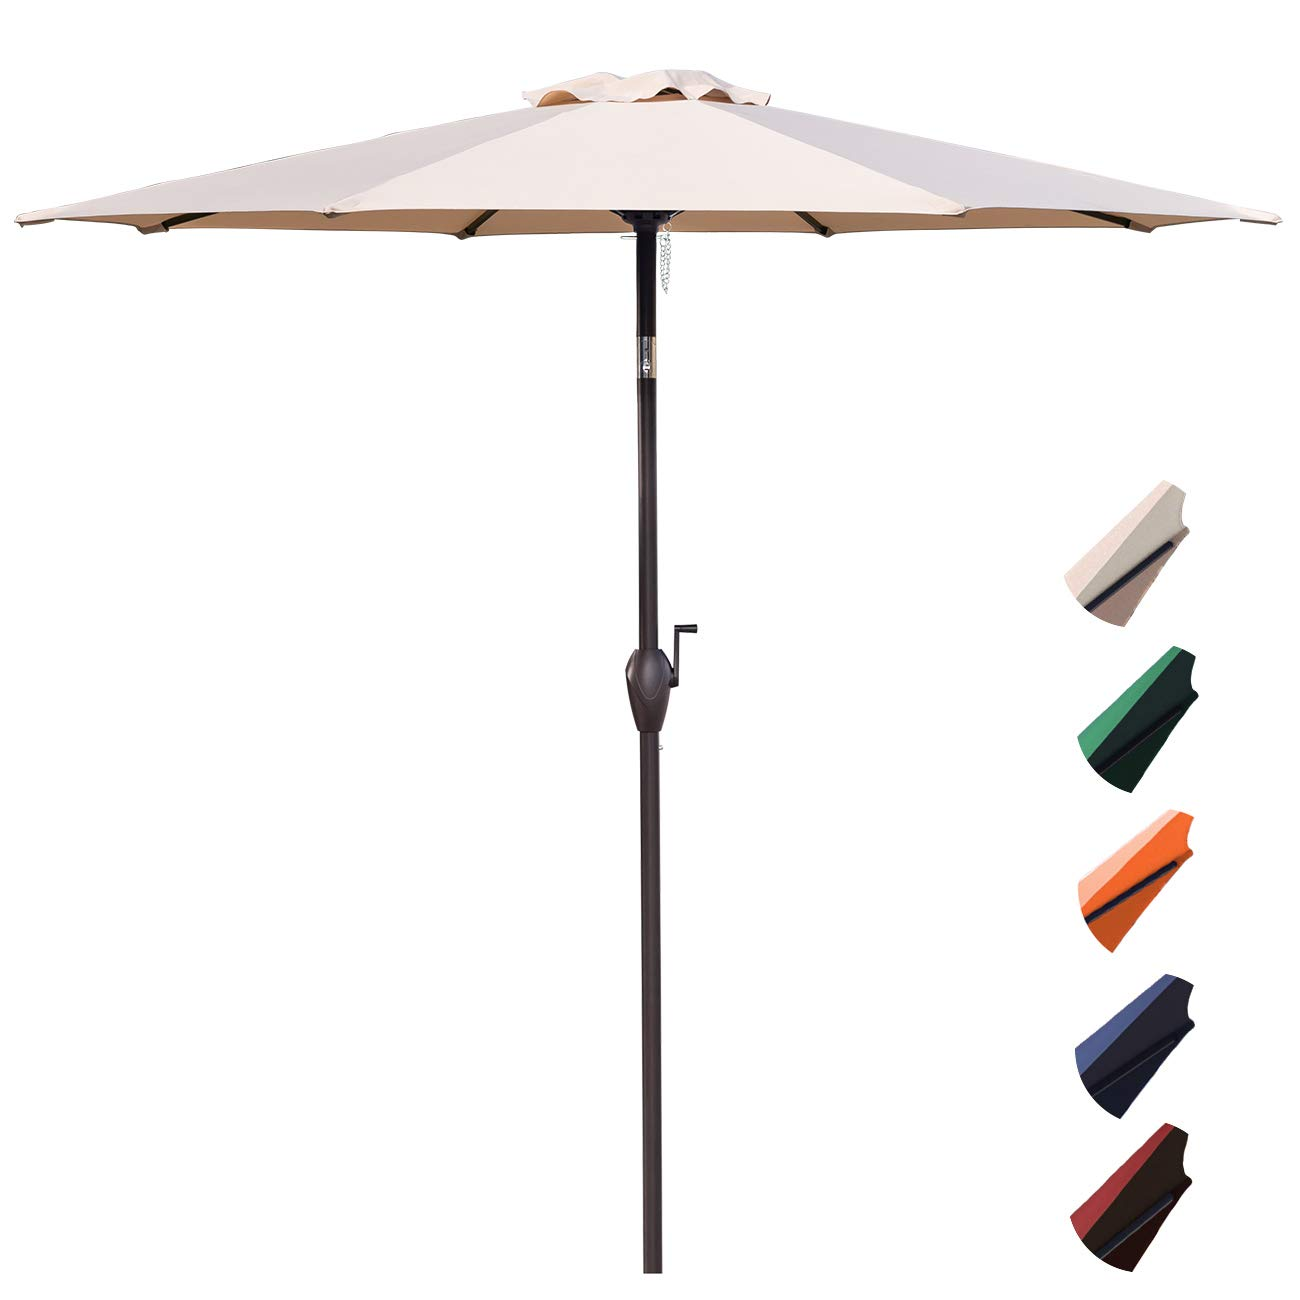 RUBEDER 9' Patio Umbrella Outdoor Market Table Umbrella with 8 Sturdy Ribs,Wing Vent,Push Button Tilt & Crank (9 Ft, Beige 2)